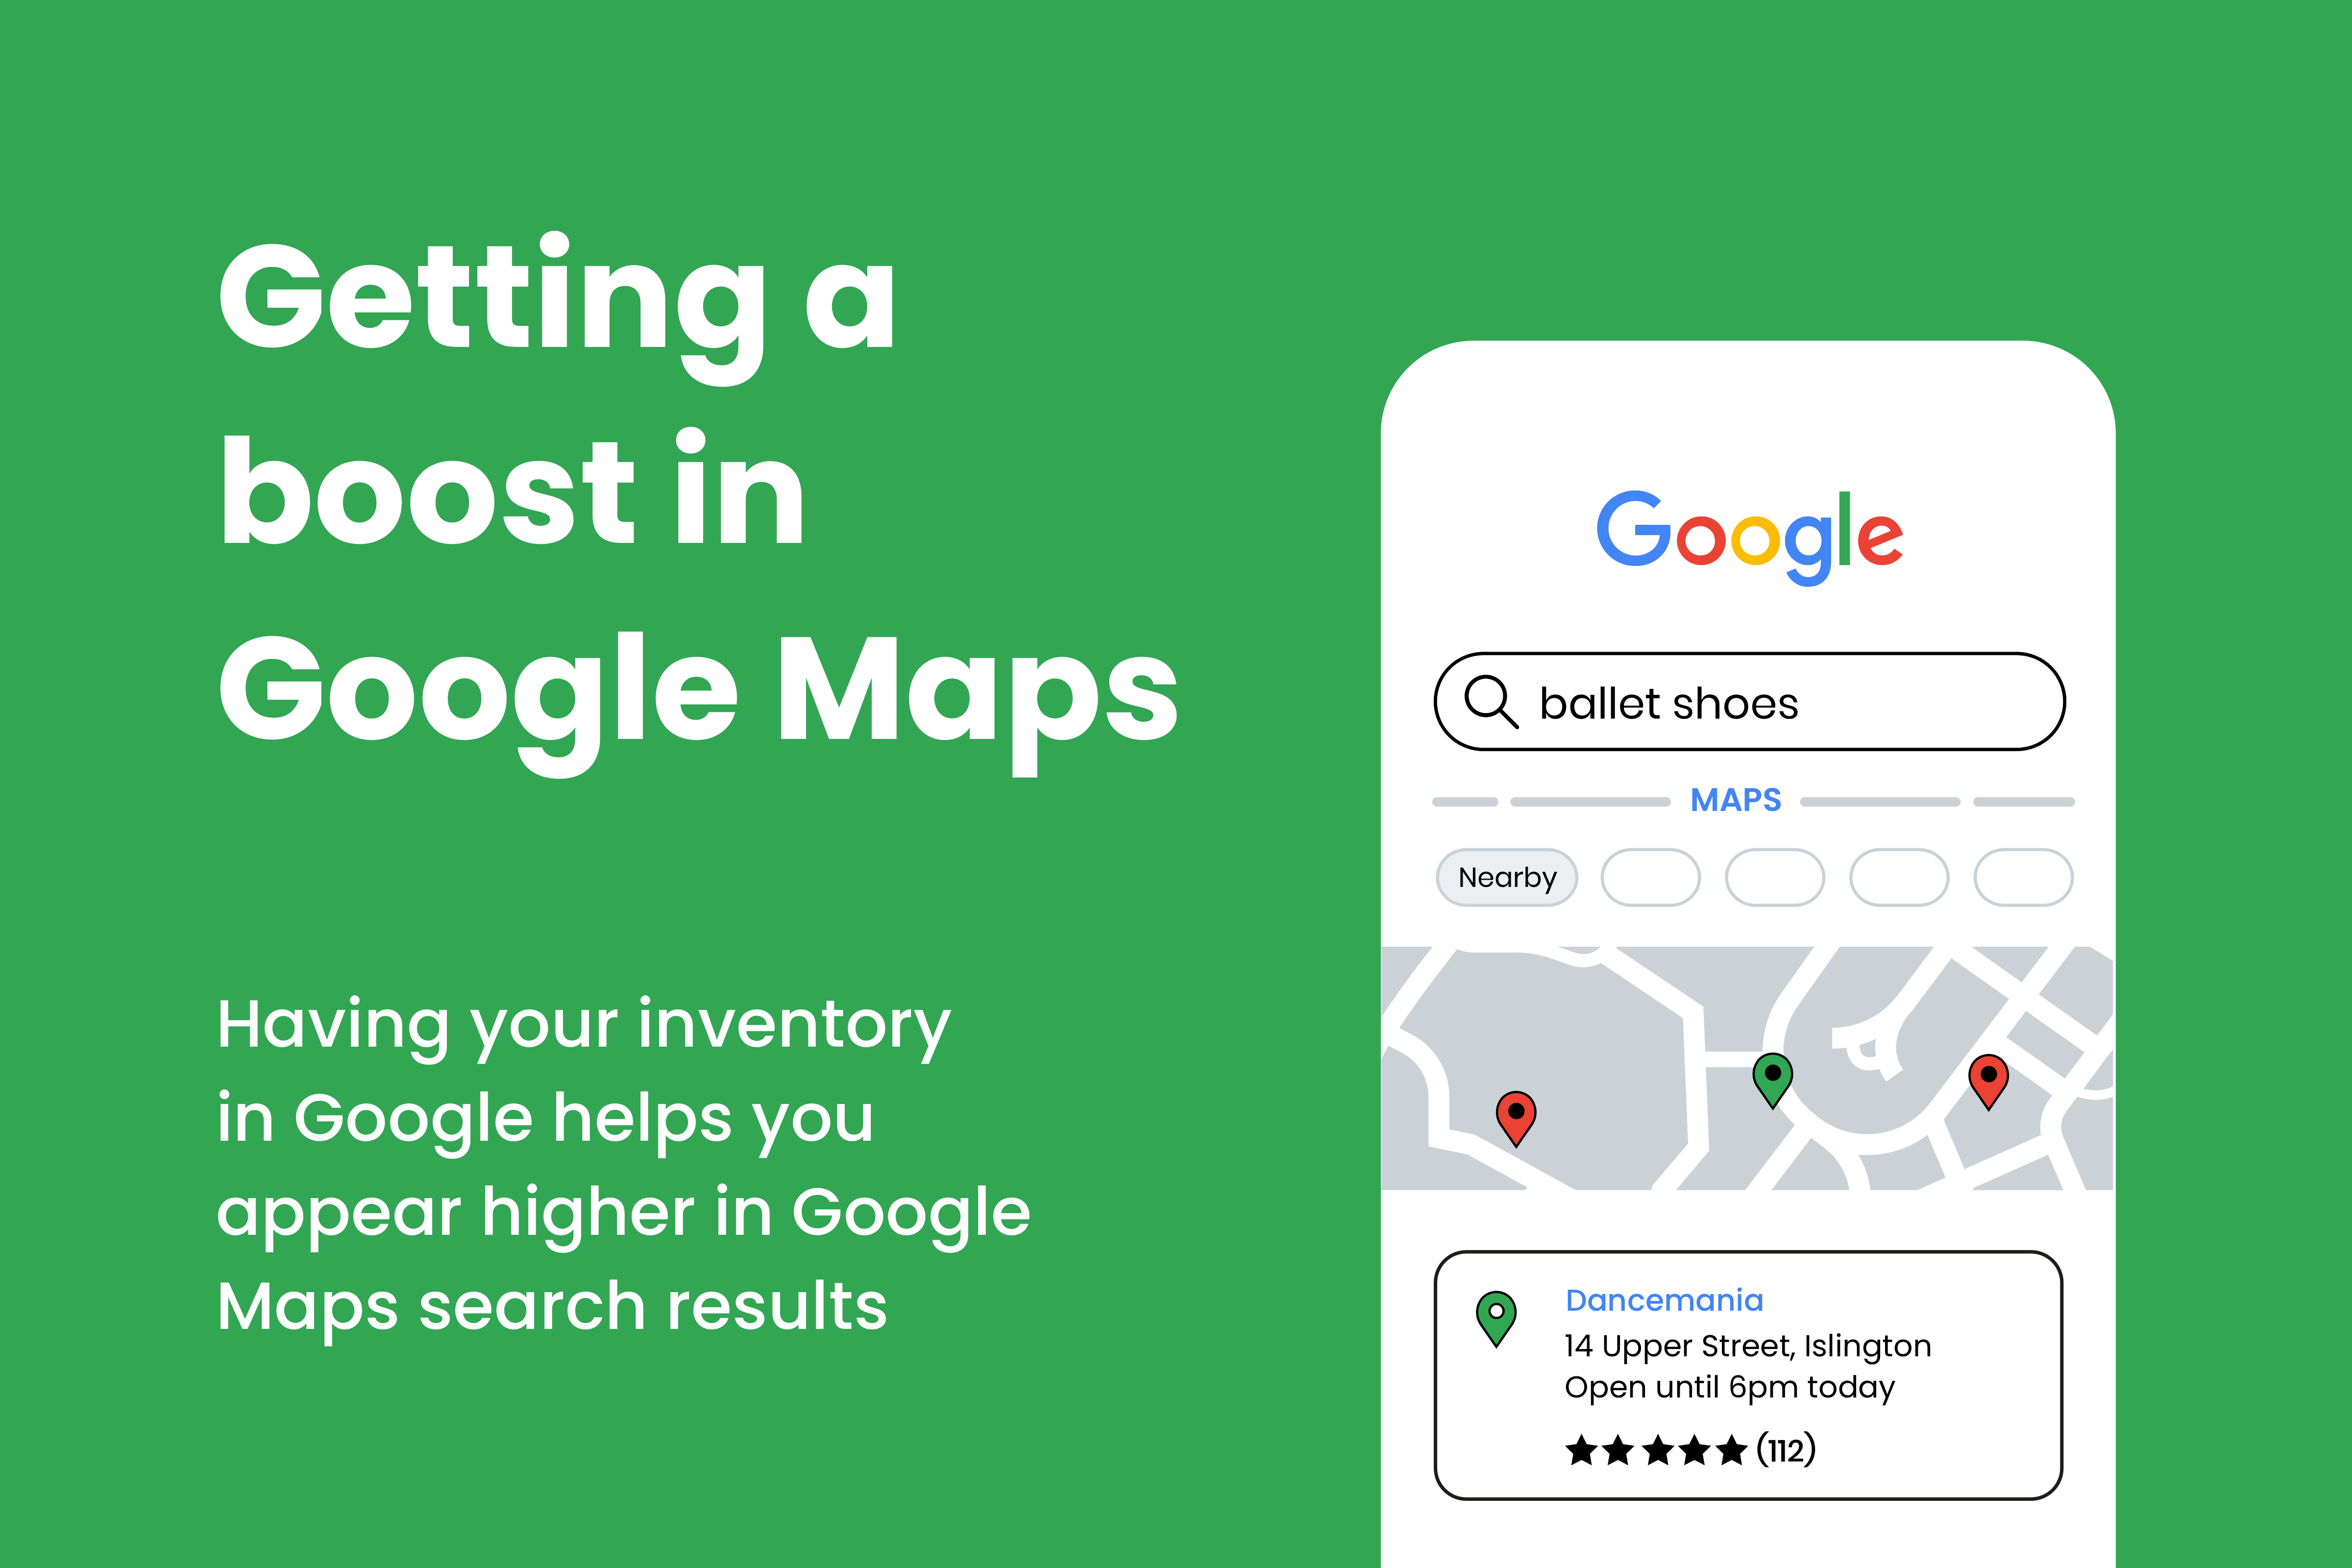 Getting a boost in Google Maps